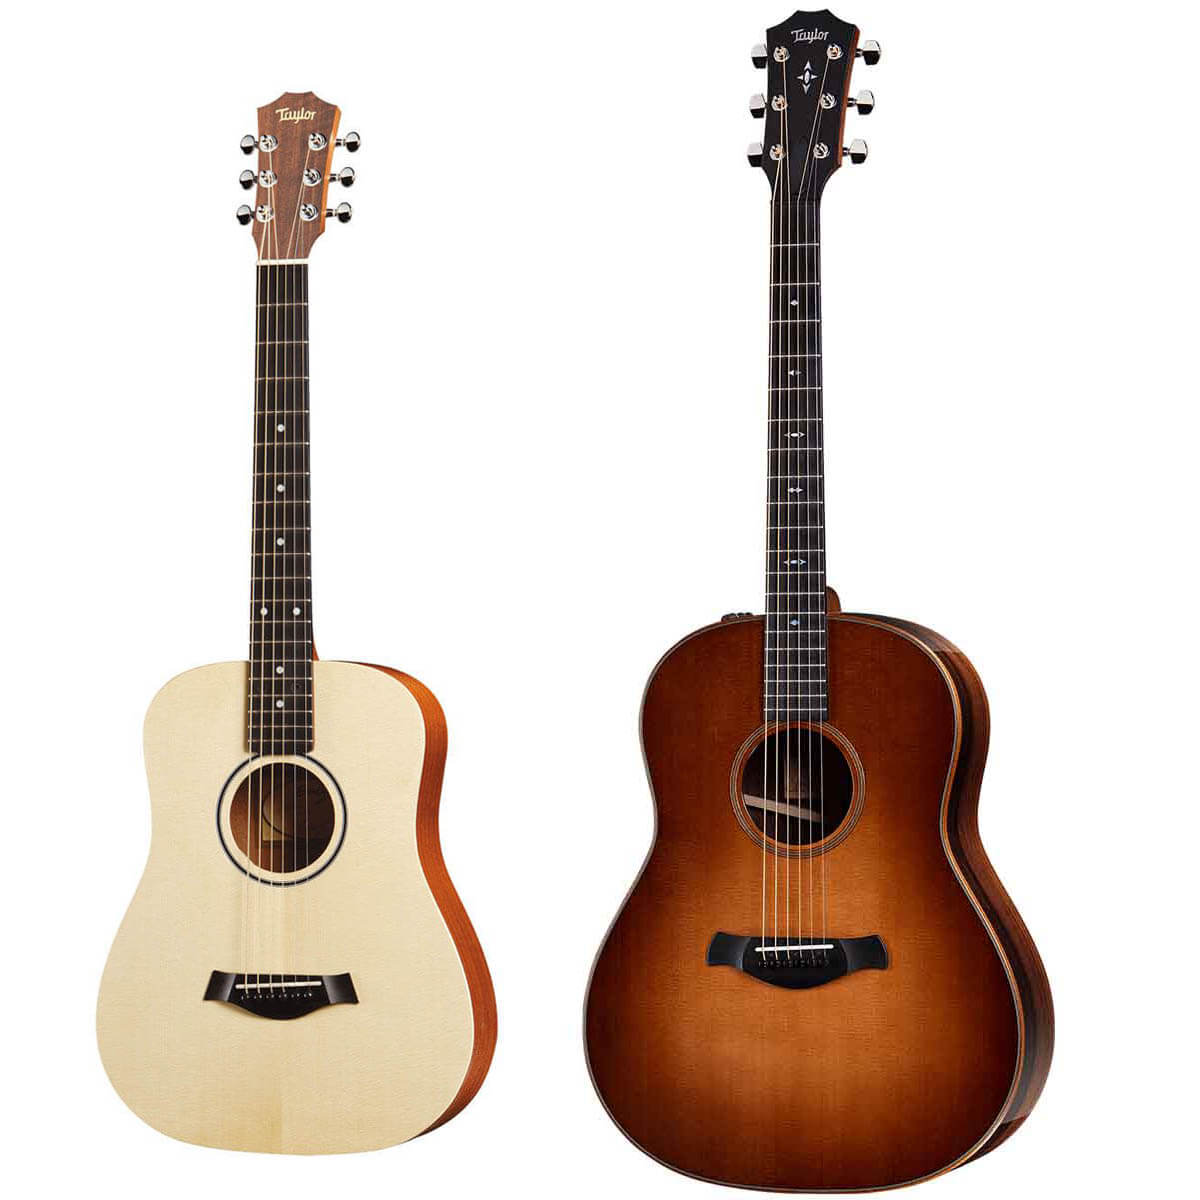 Taylor Builders Edition 717e WHB western-guitar + BT1 Baby Taylor